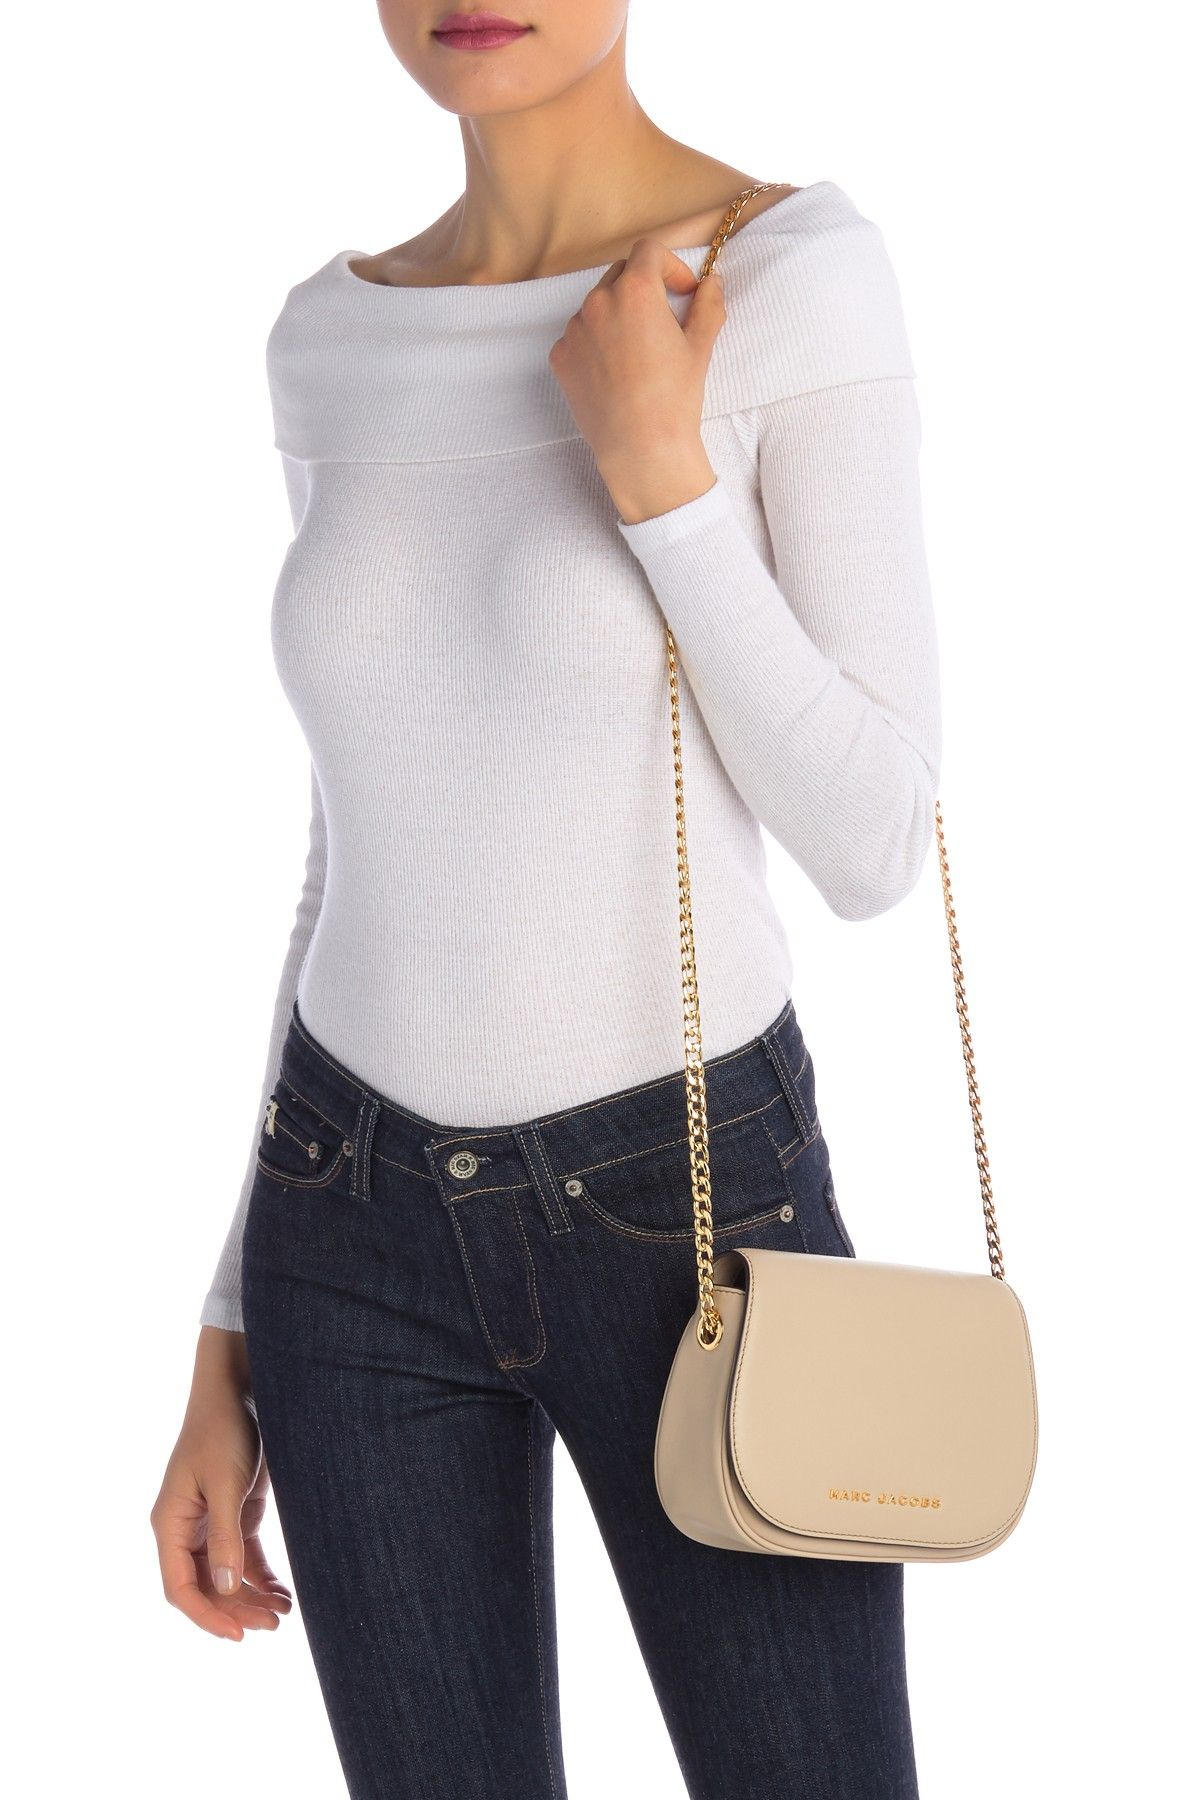 Marc Jacobs | Avenue Leather Crossbody | Marc jacobs